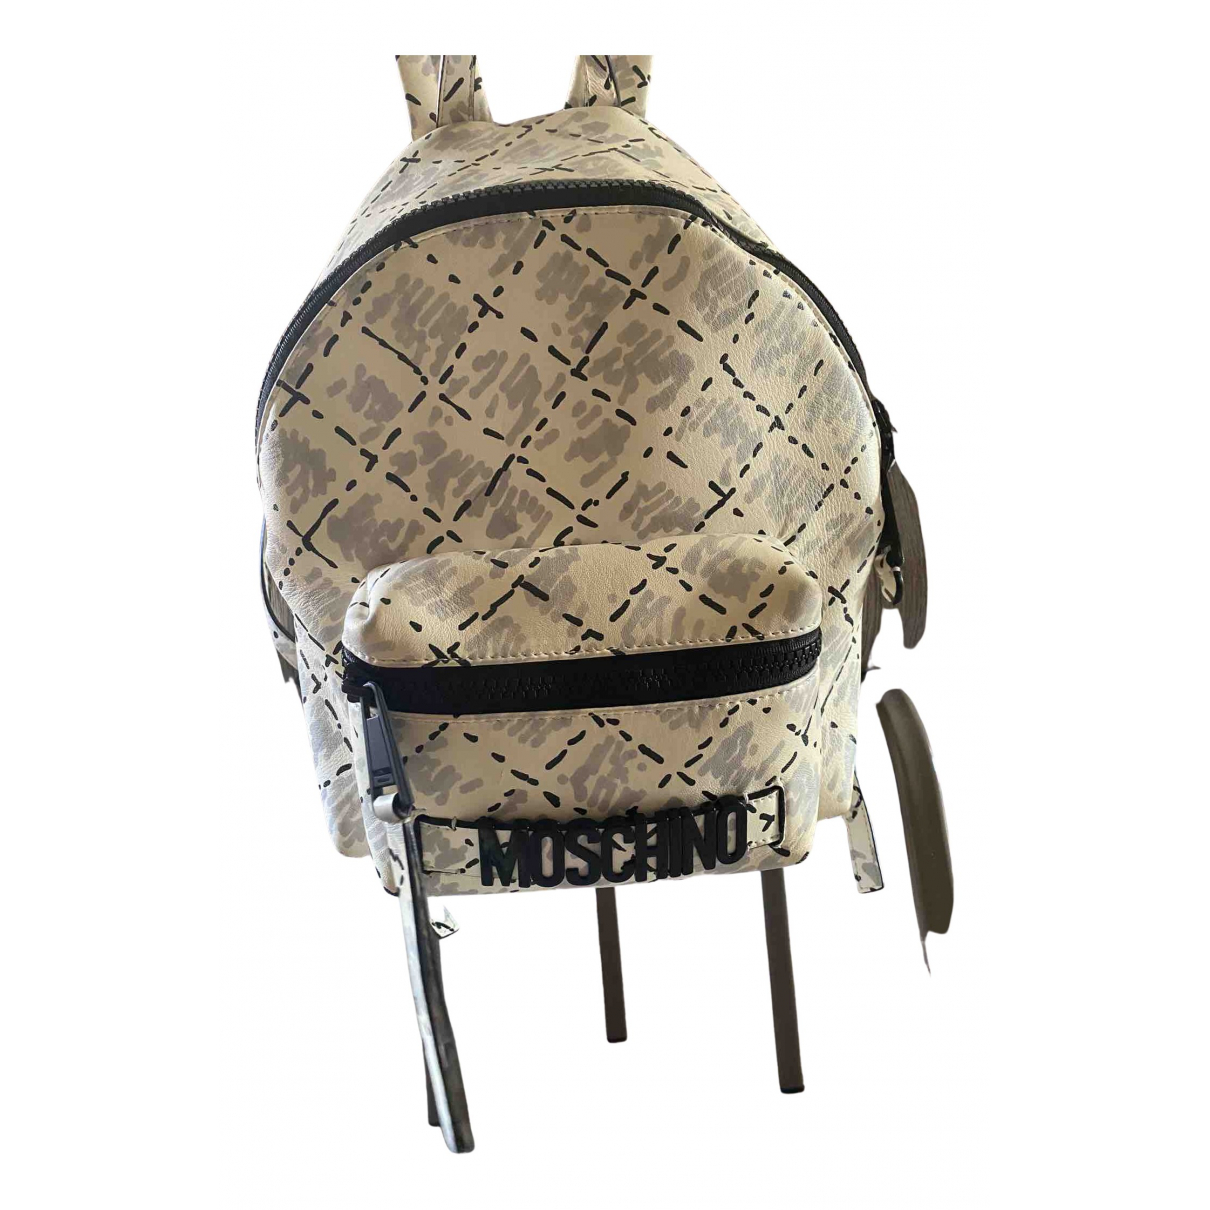 Moschino N Multicolour Leather backpack for Women N